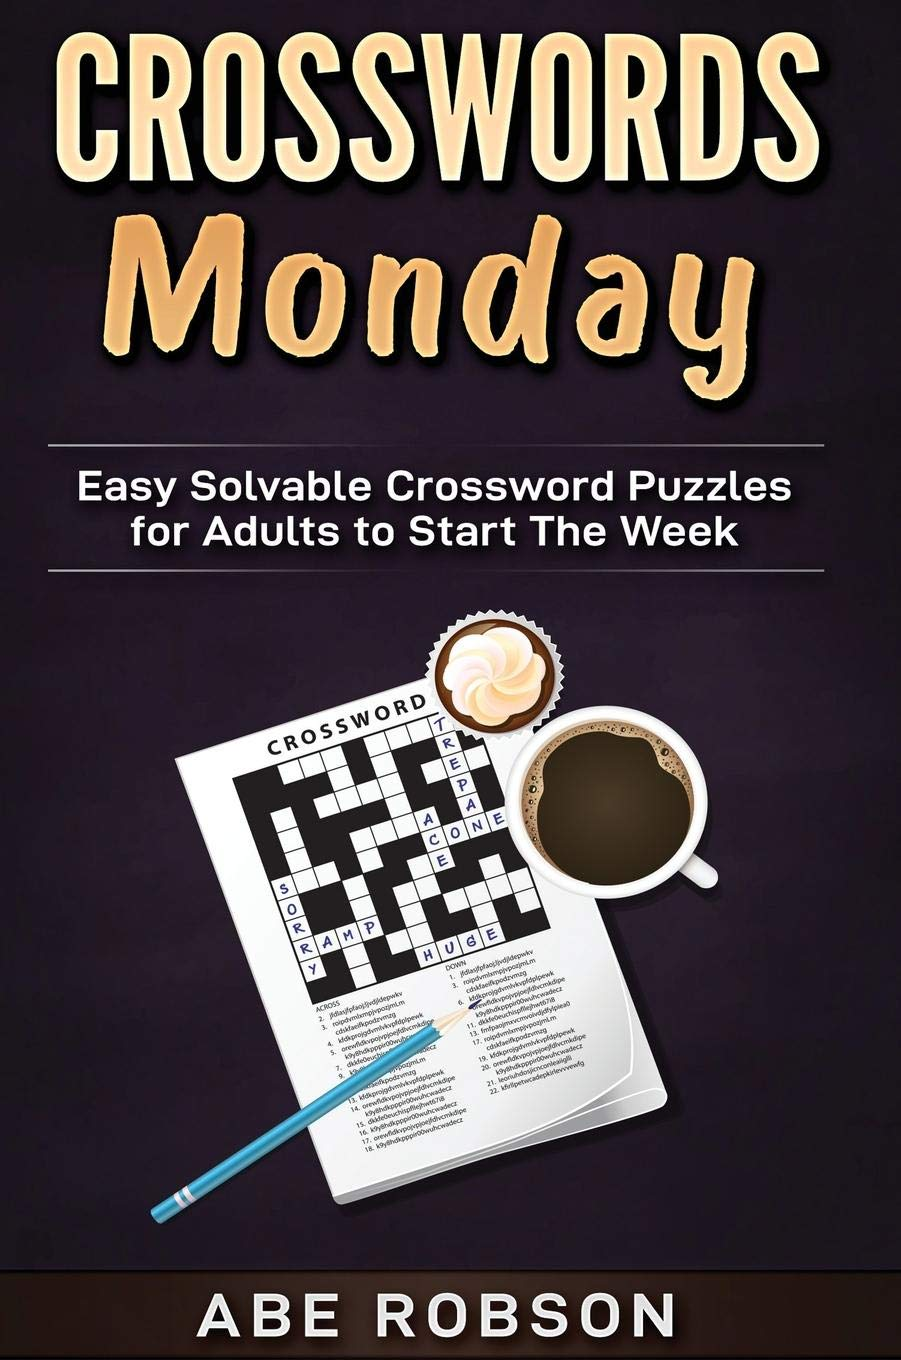 Amazon Com Crosswords Monday Easy Solvable Crossword Puzzles For Adults To Start Your Week 9781922462695 Robson Abe Books